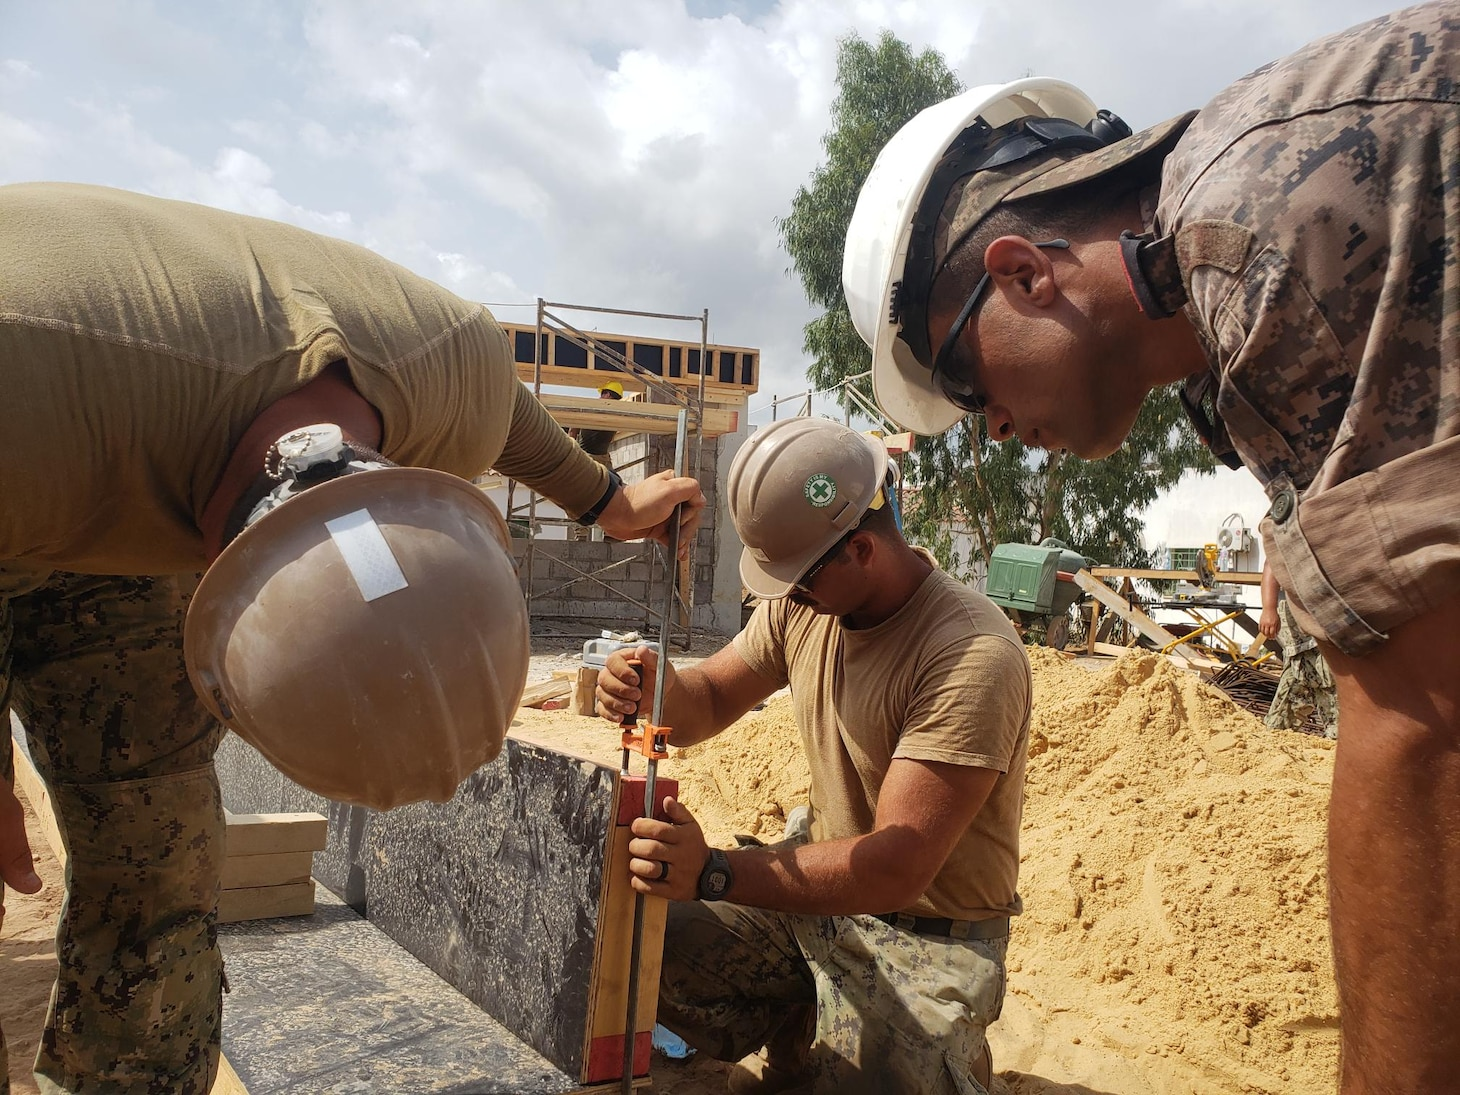 Steelworker Constructionman Rusty Garza and Builder Constructionman Kai Zanjanipour from NMCB 11 work with First Soldier Daji Oussama of the Tunisian Engineers to set concrete formwork for the building foundation.